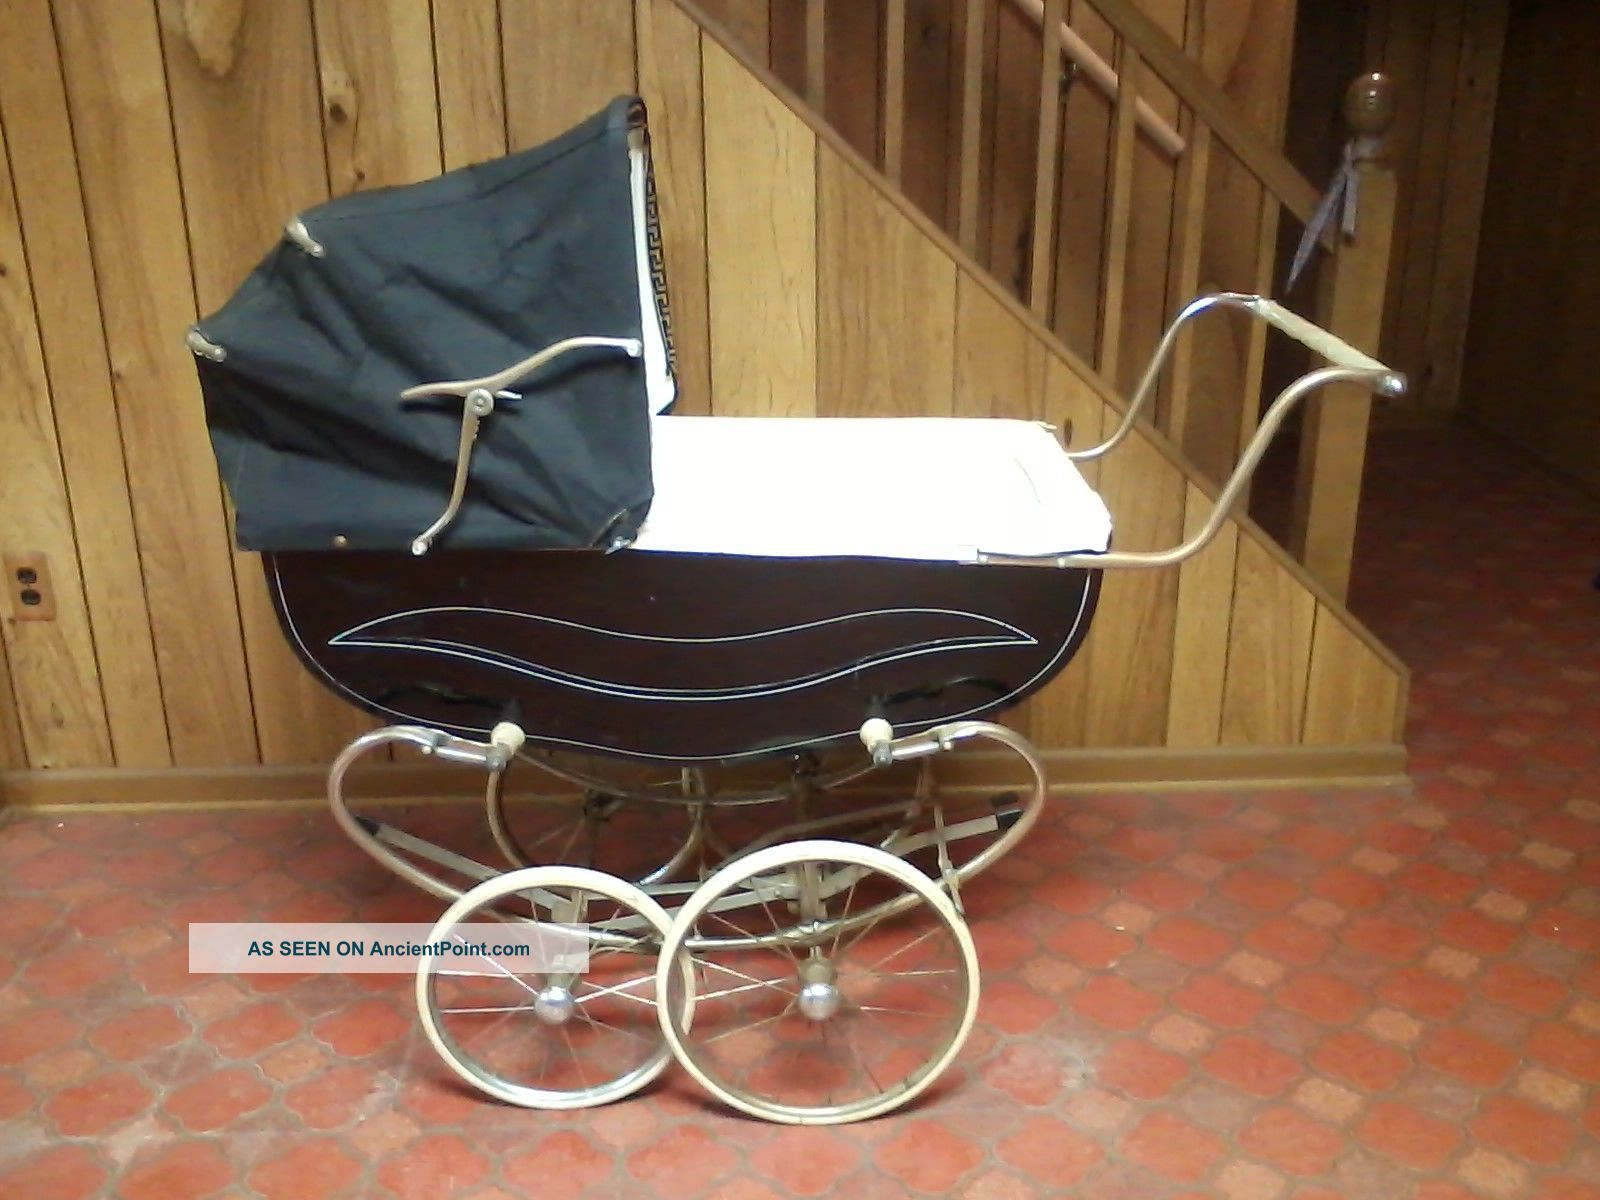 Vintage Baby Carriage Stroller Buggy - 1960s - Bilt Rite Baby Carriages & Buggies photo